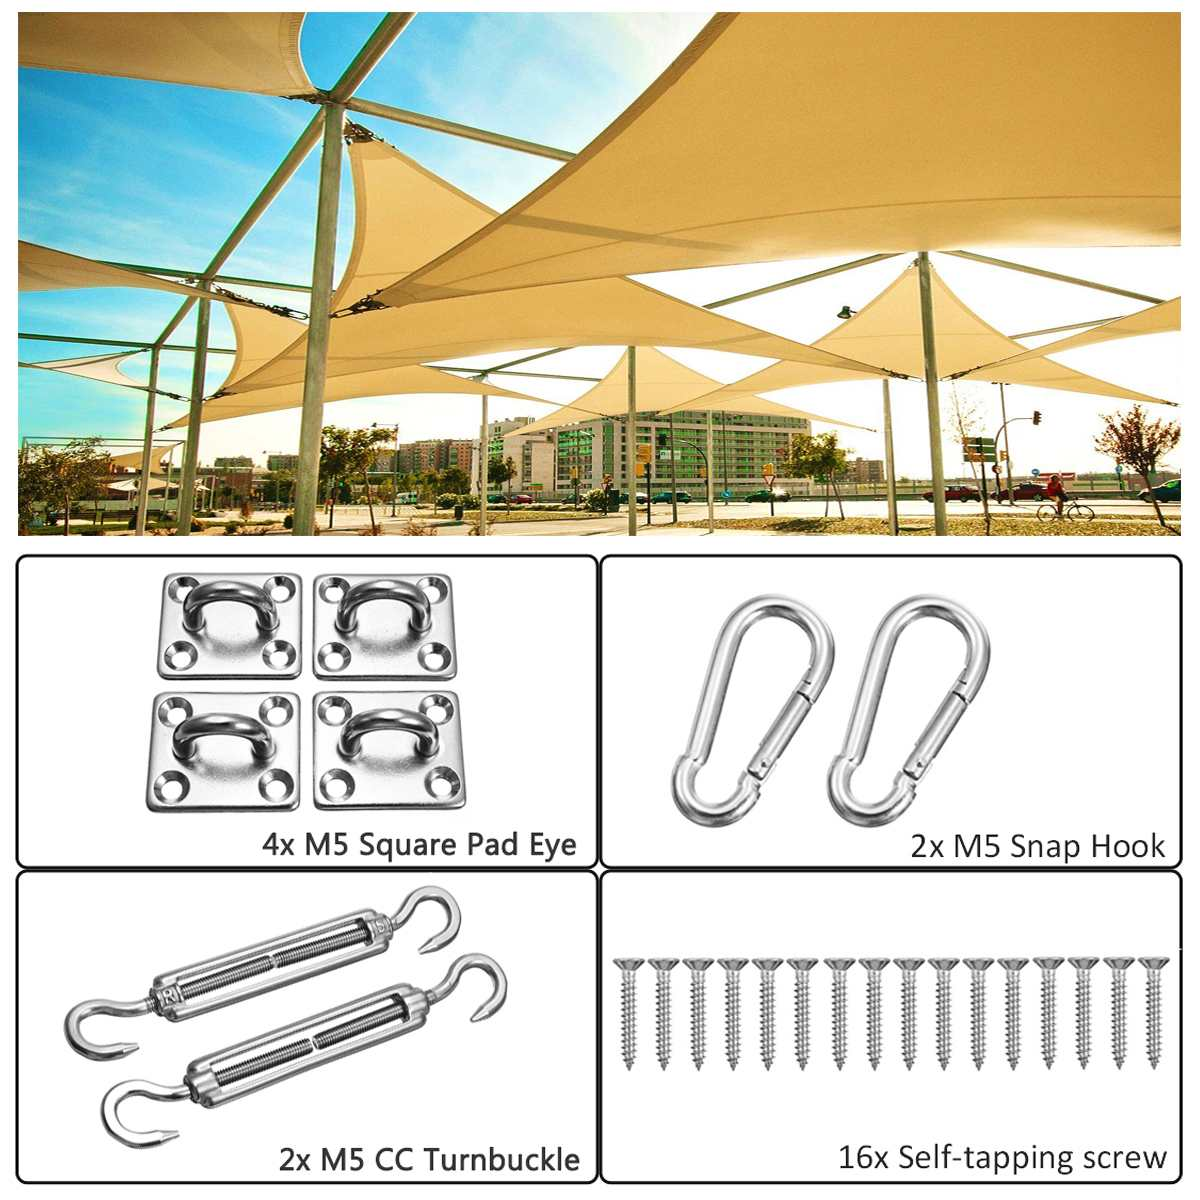 24Pcs Sun Shade Sail Accessories For Rectangle Or Square Shade Sail Replacement Fitting Tools Kit Realiable To Use